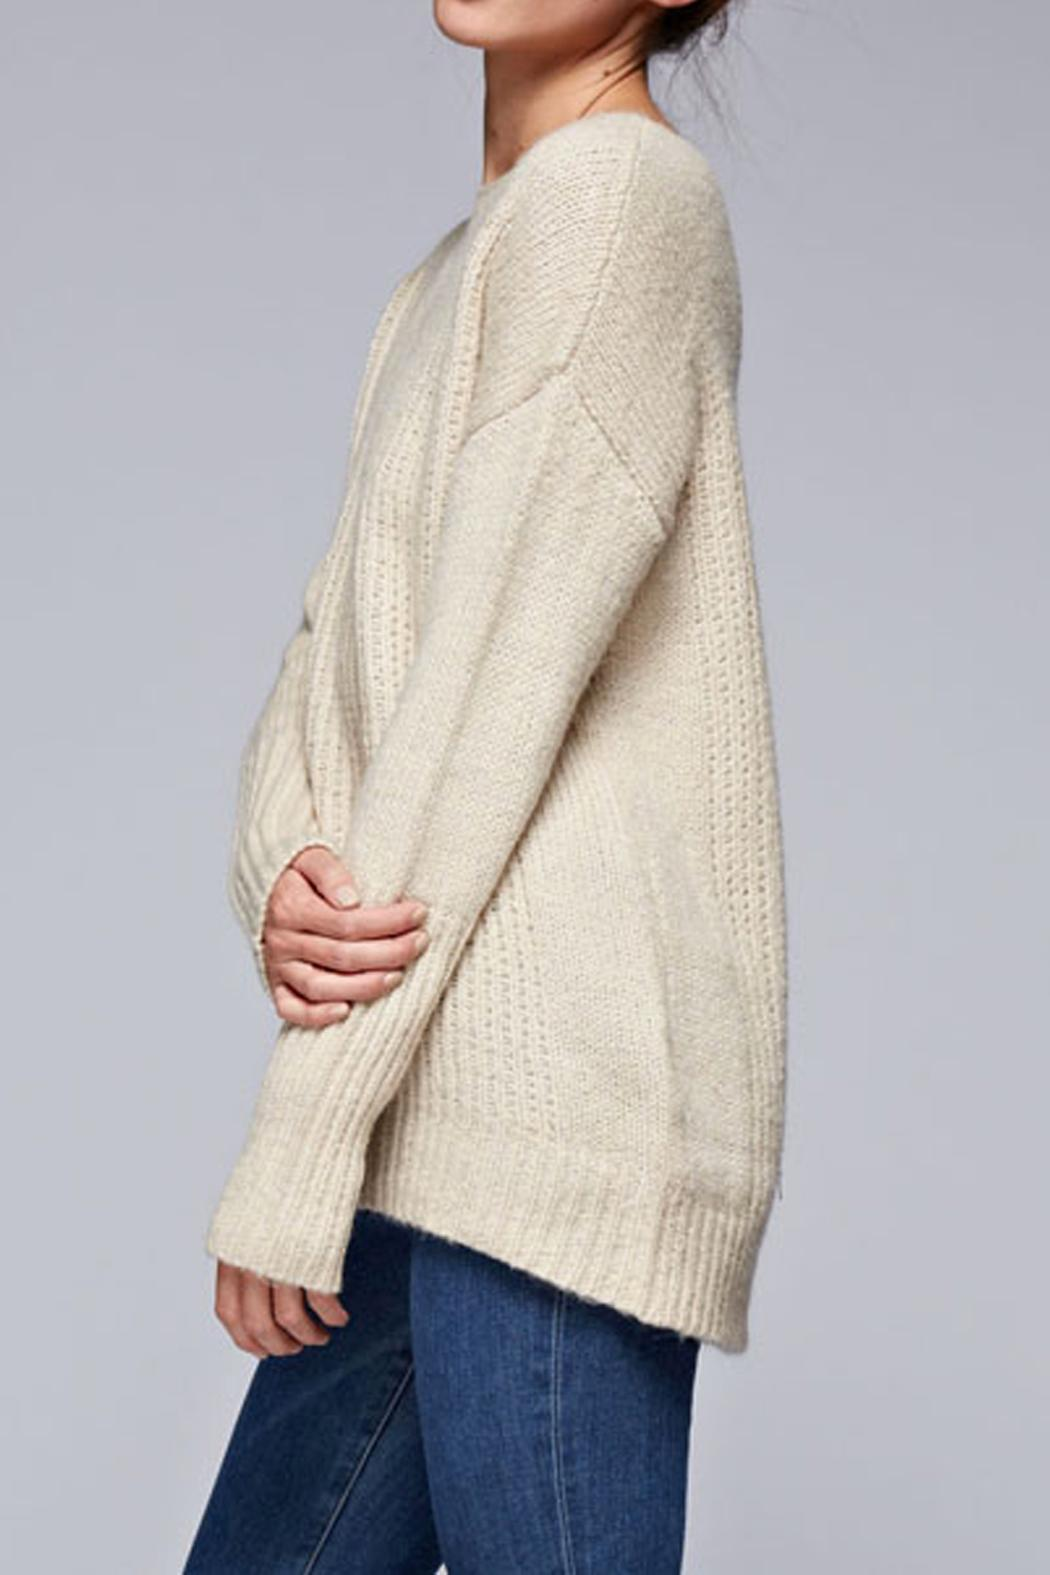 SNAZZY CHIC BOUTIQUE Beige Oversized Sweater - Front Full Image